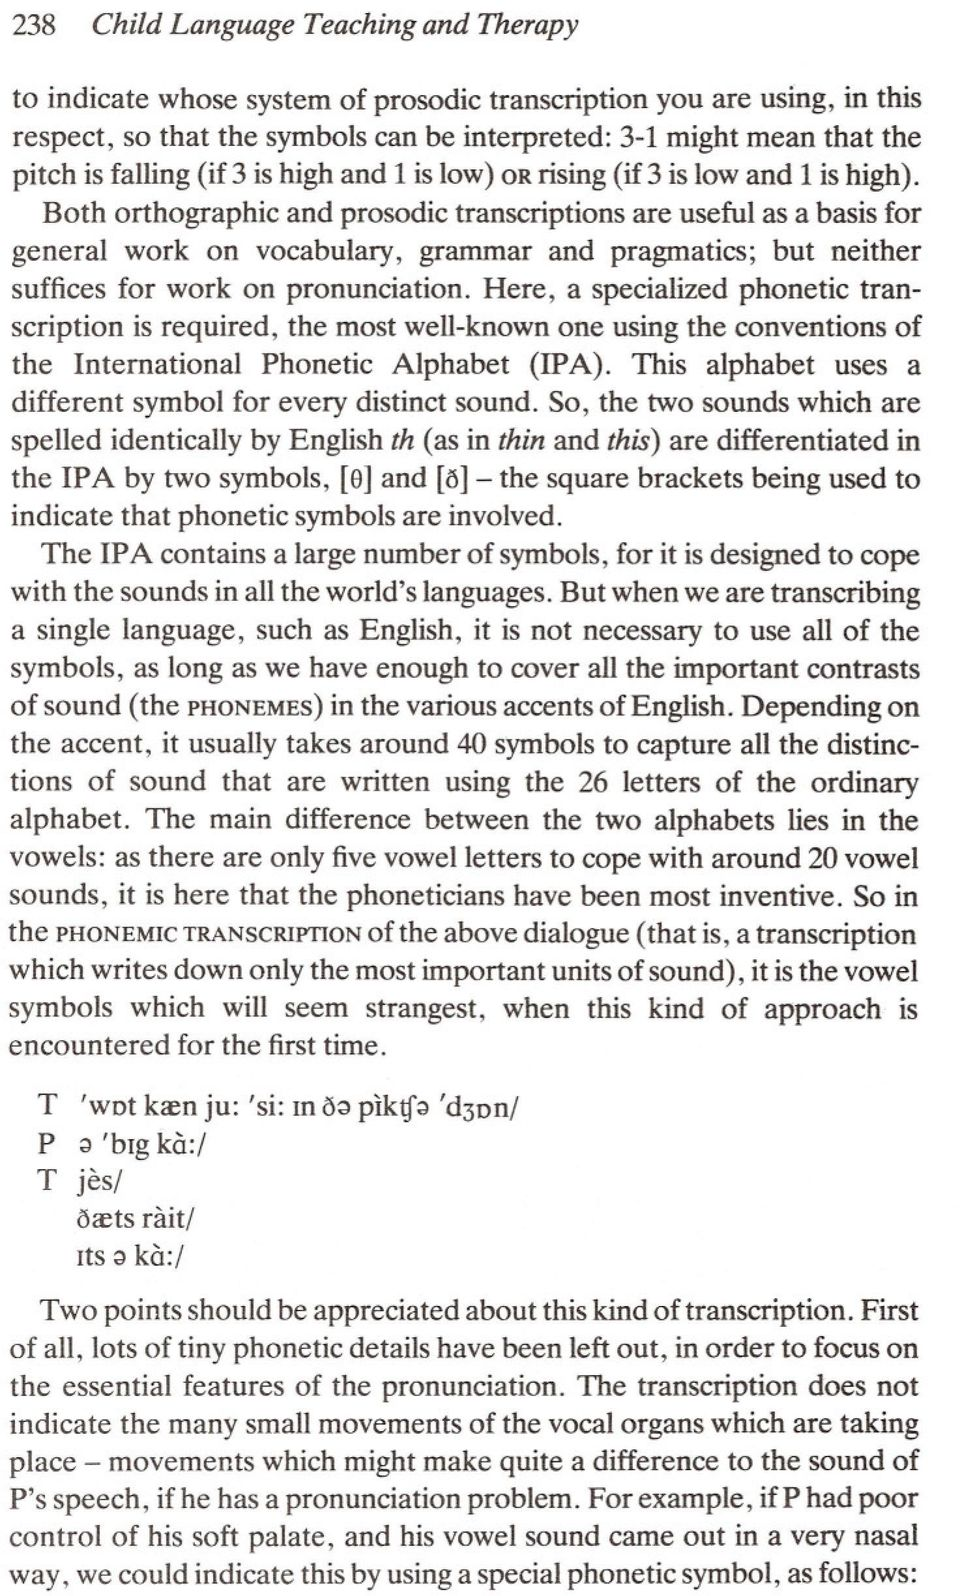 Both orthographic and prosodic transcriptions are useful as a basis for general work on vocabulary, grammar and pragmatics; but neither suffices for work on pronunciation.